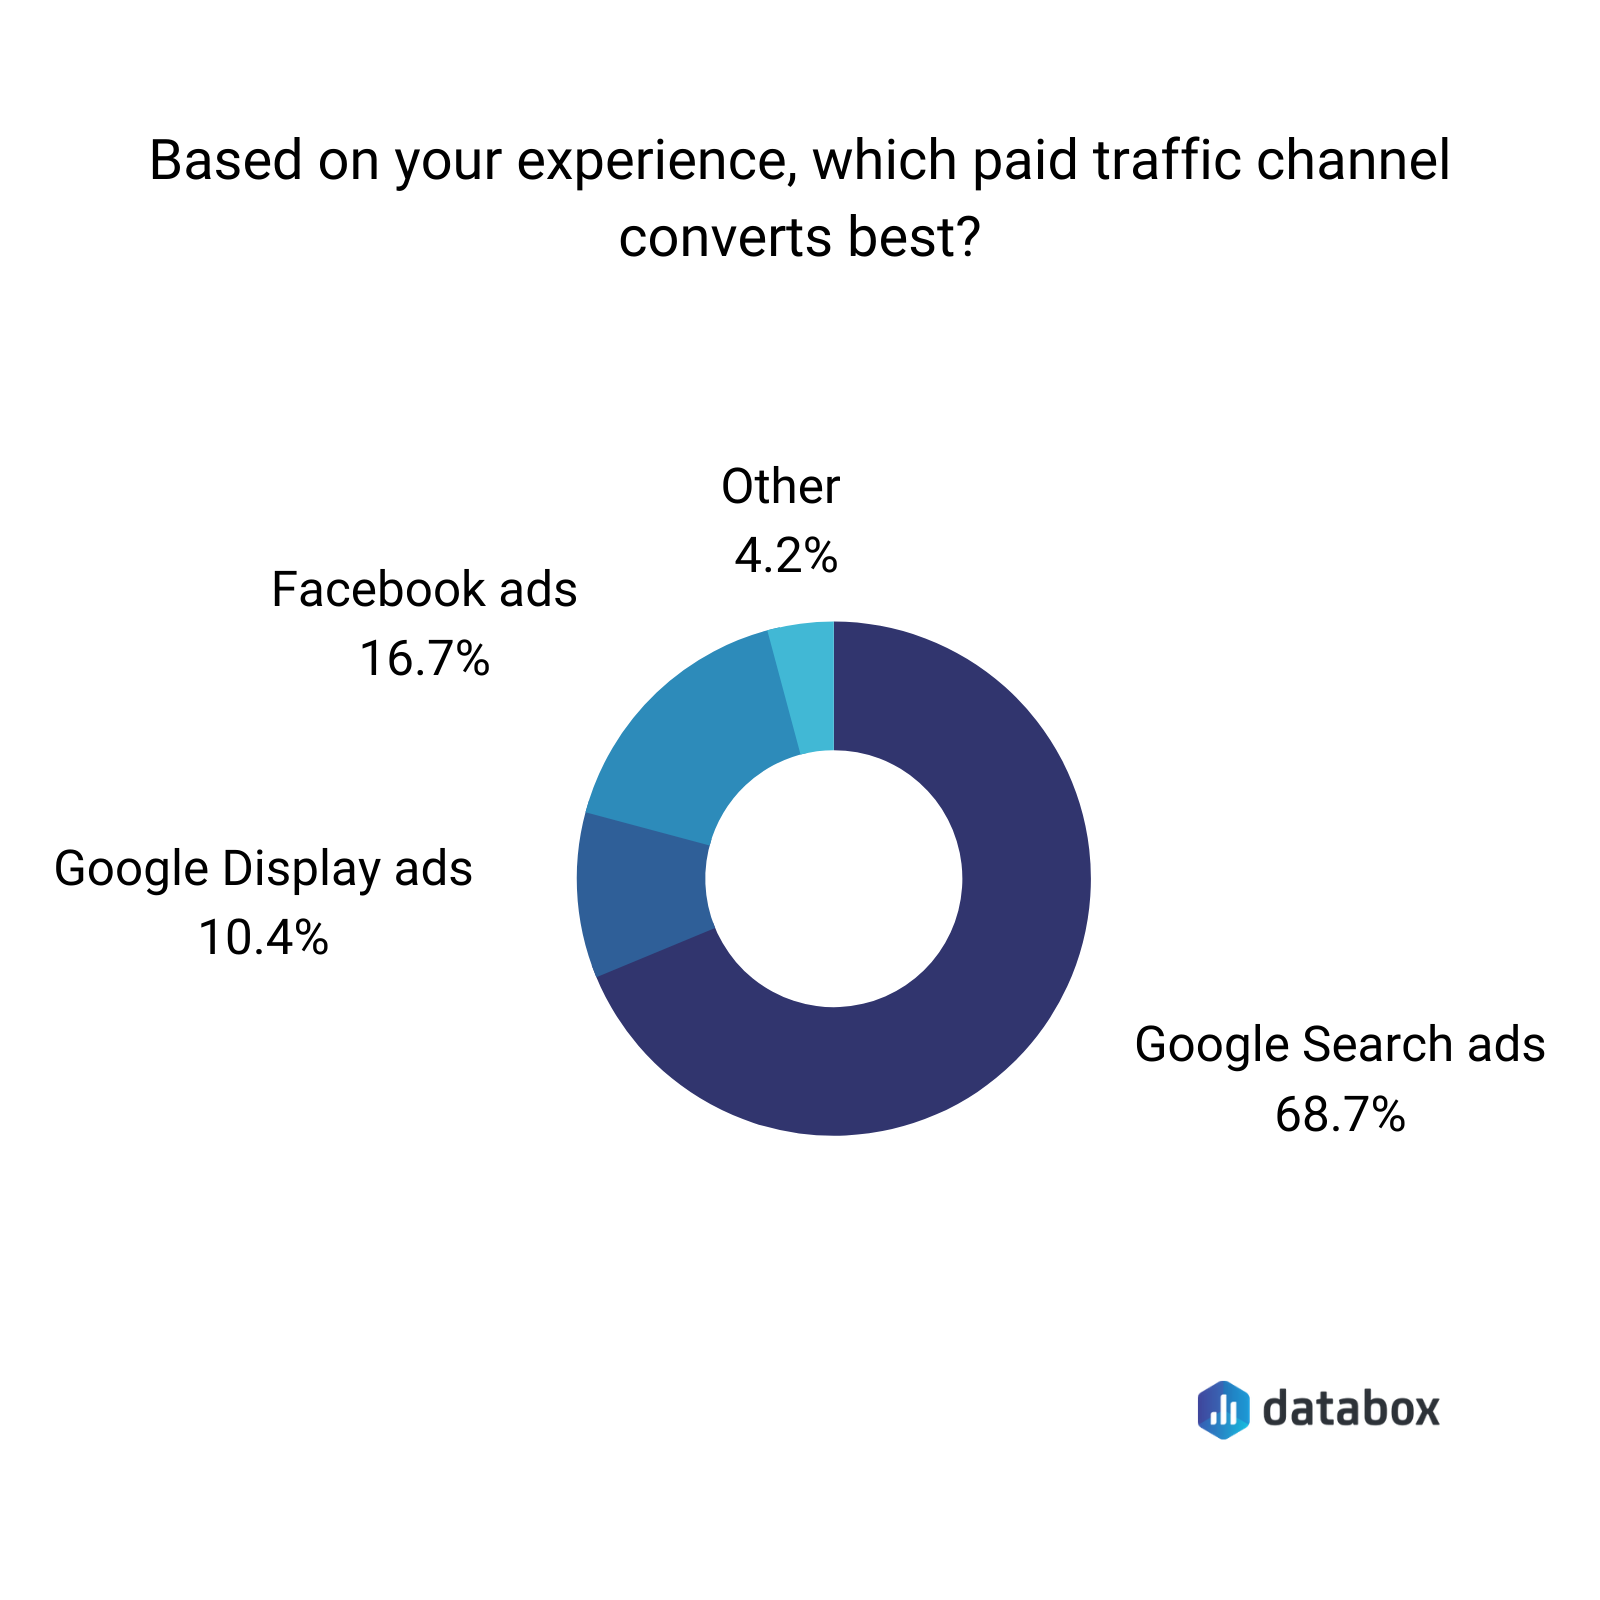 Based on your experience, what paid traffic channel converts best?